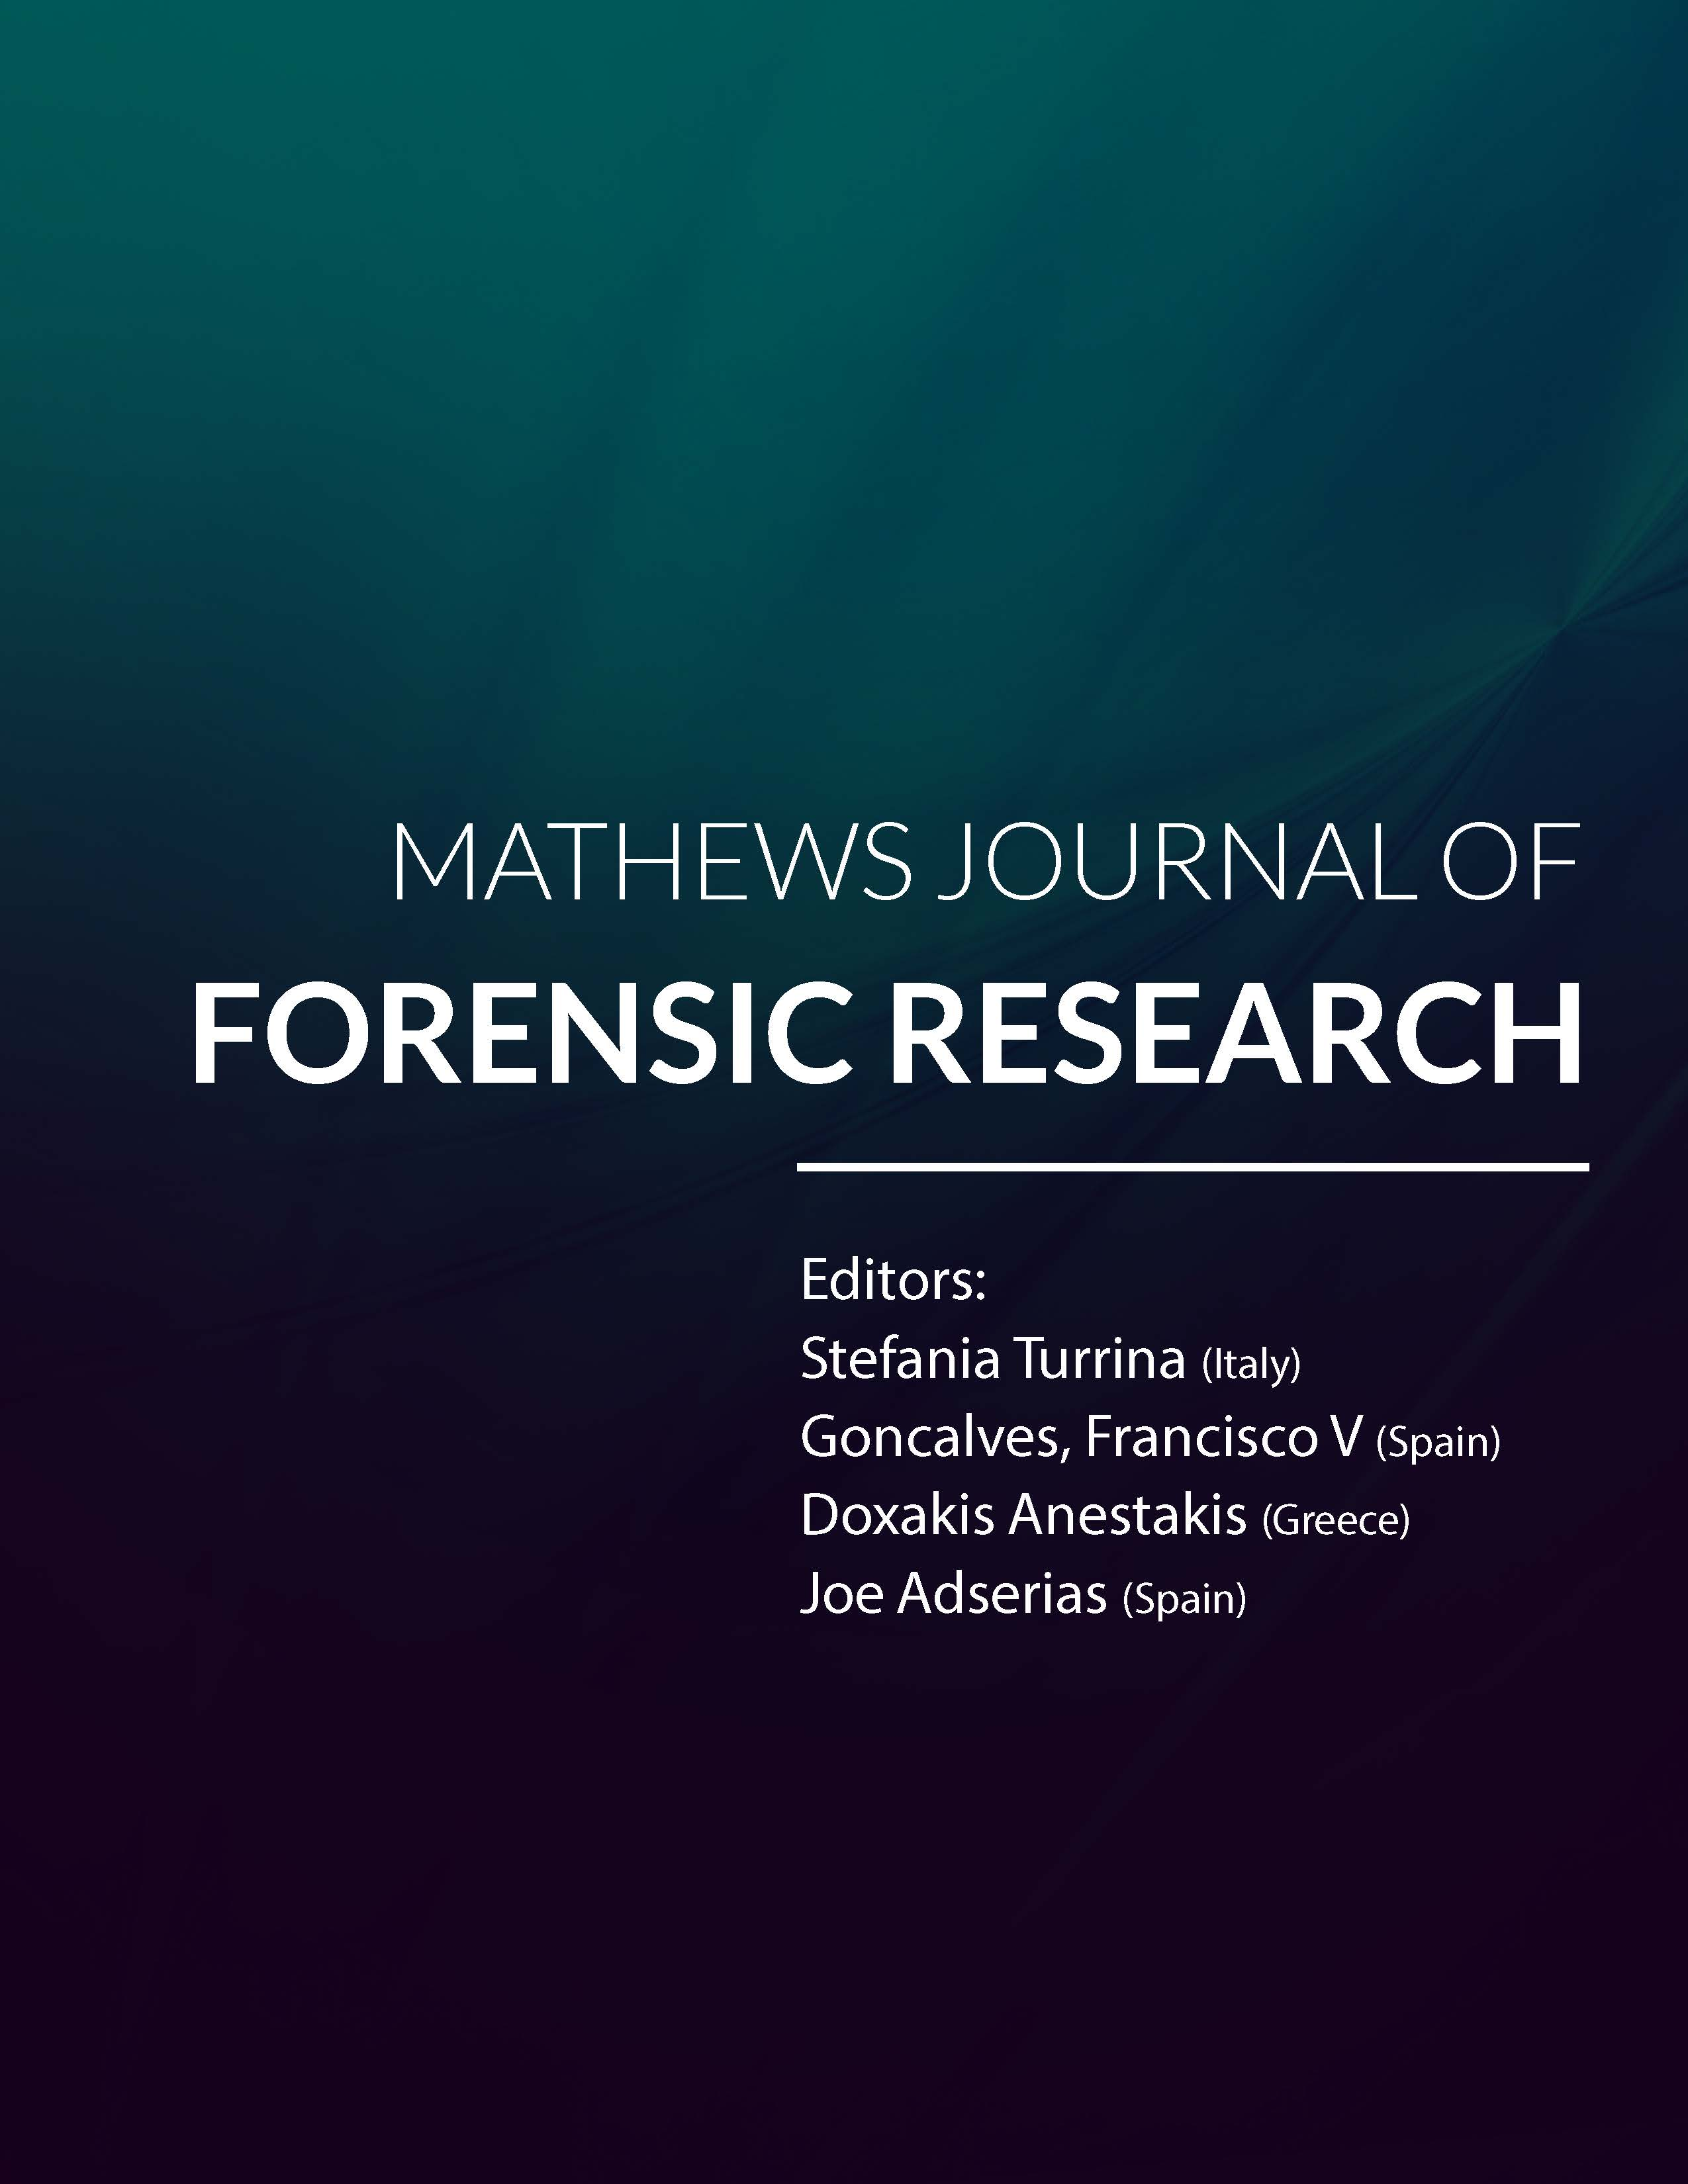 Mathews Journal of Forensic Research